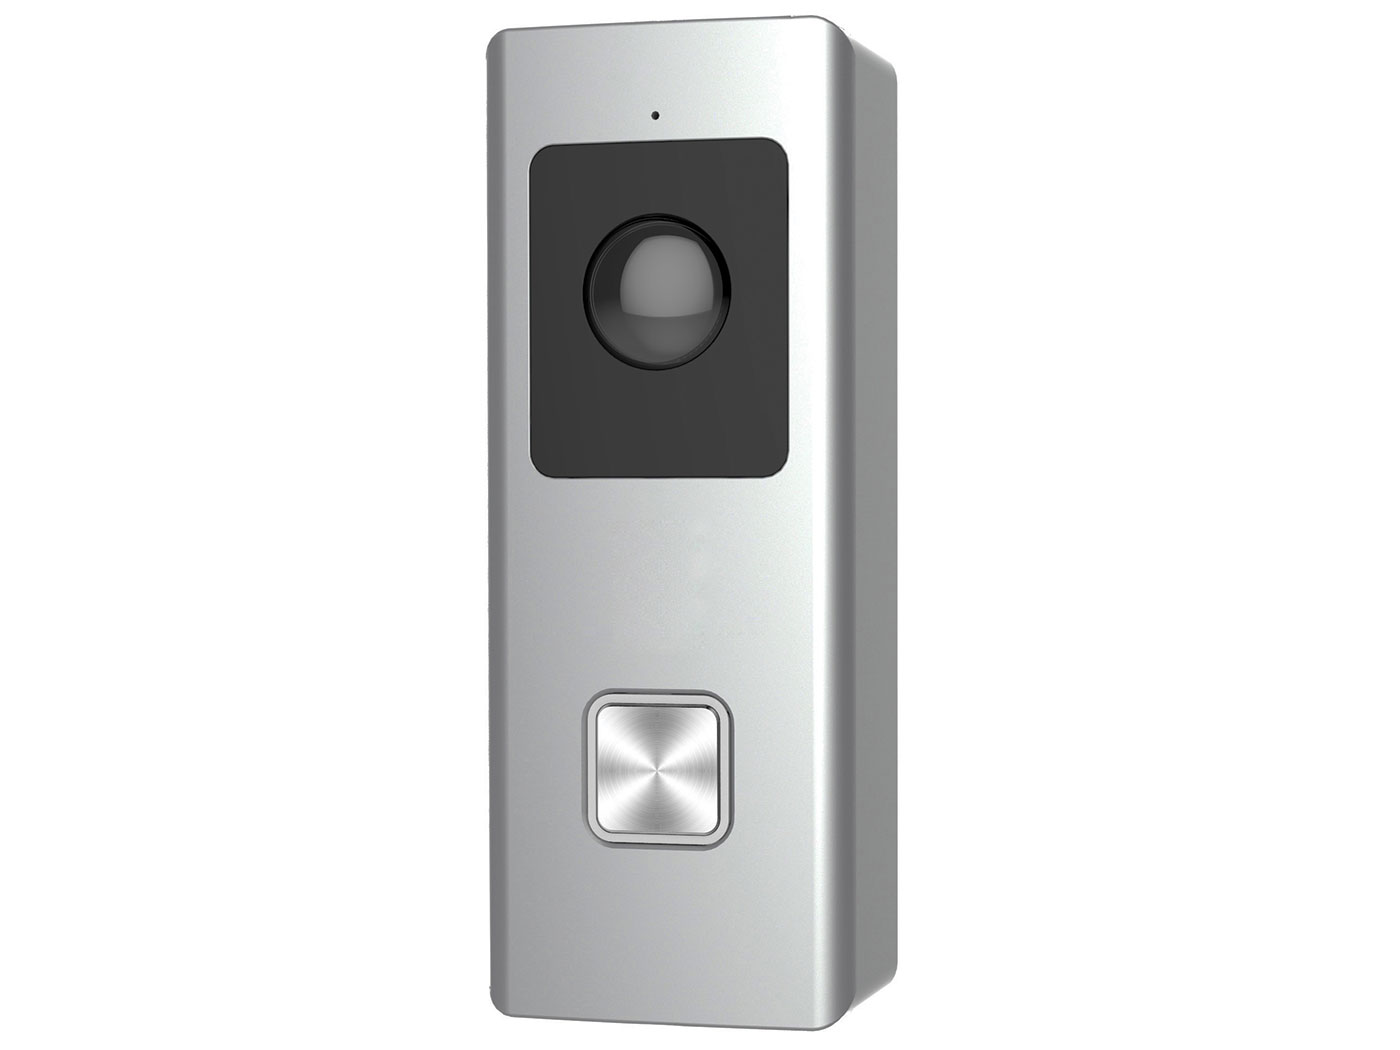 RS-3240 INTERLOGIX UltraSync Doorbell Camera. UltraSync Compatible, 1080p, NTSC/PAL, Wi-Fi, Outdoor Doorbell, D/N, H.264, Audio, 5m IR, 1.96mm @F2.2, doorbell wire, and 16GB Micro SD card Included